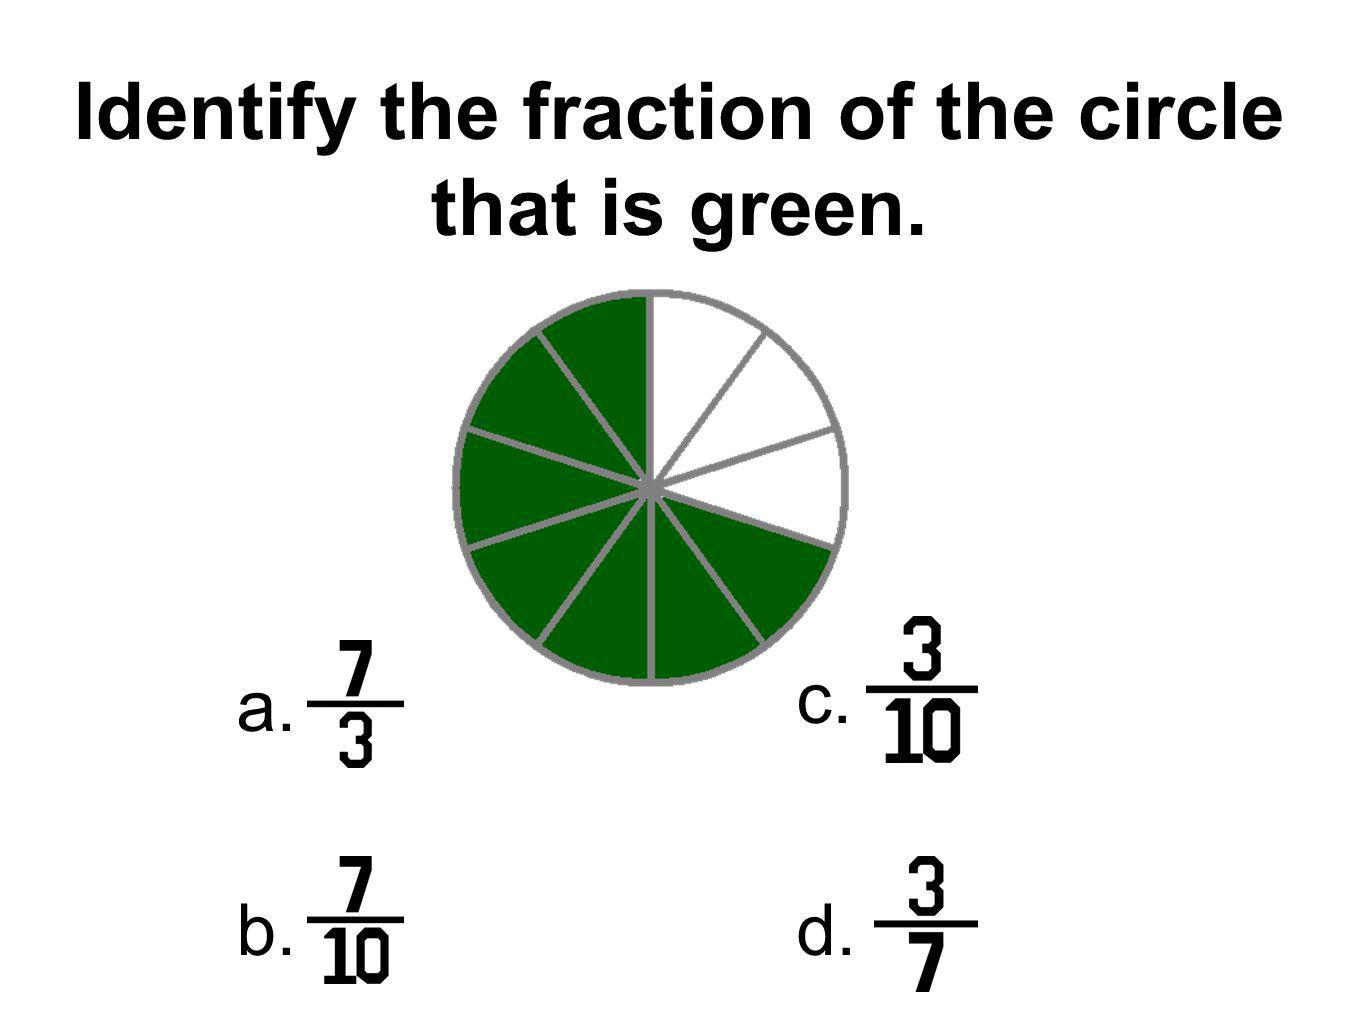 Identify the fraction of the circle that is green.